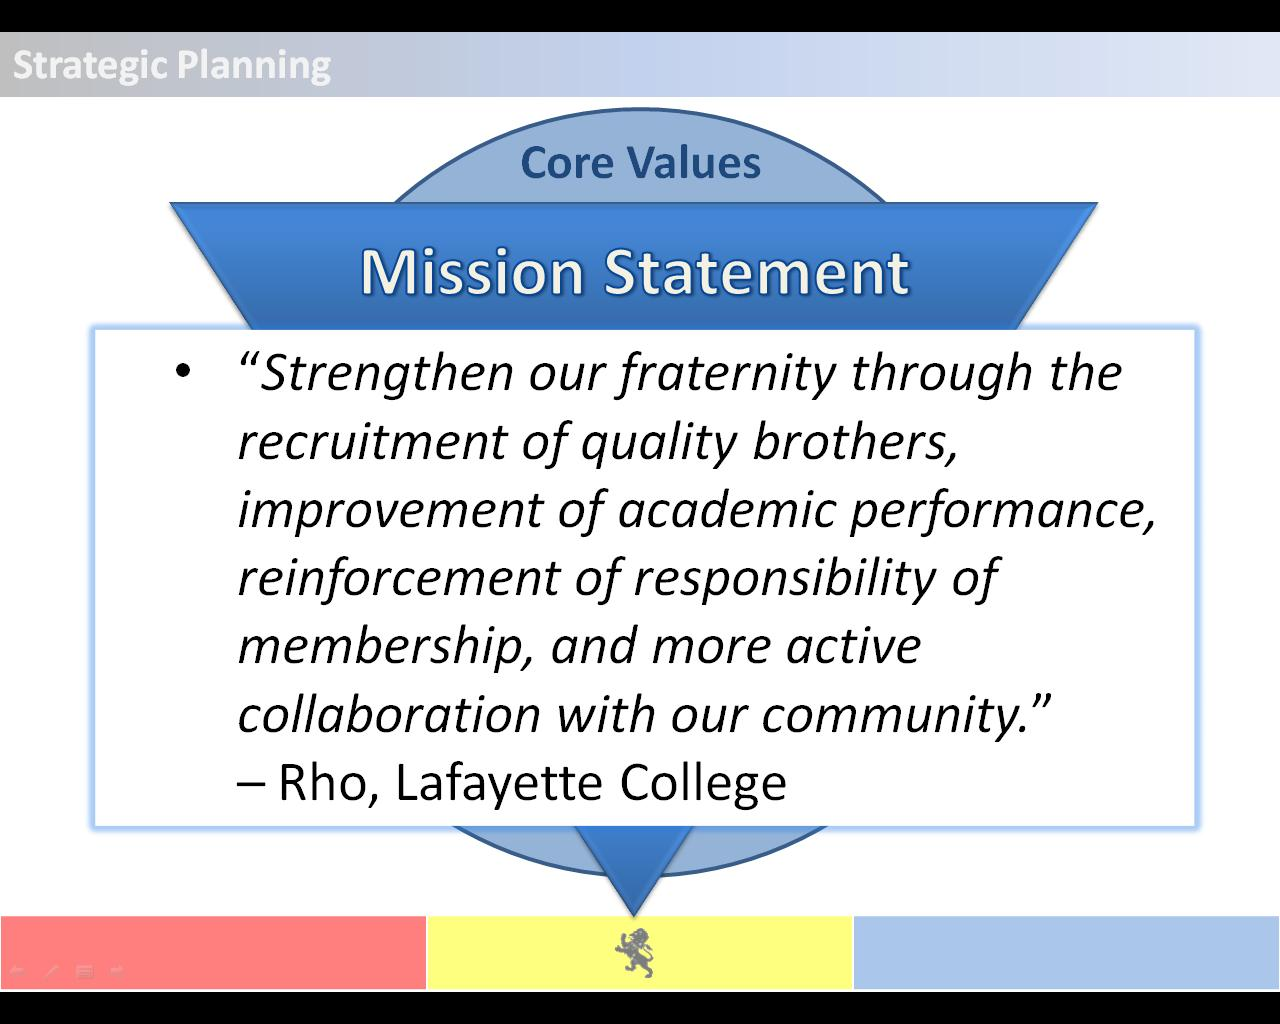 personal mission statement core values A farm business mission statement reflects the core values and beliefs of the individuals who lead the business to the extent there are large differences between a farm mission and a personal mission, or between farm business values and personal core values, there will be discord and friction for that individual within the business.